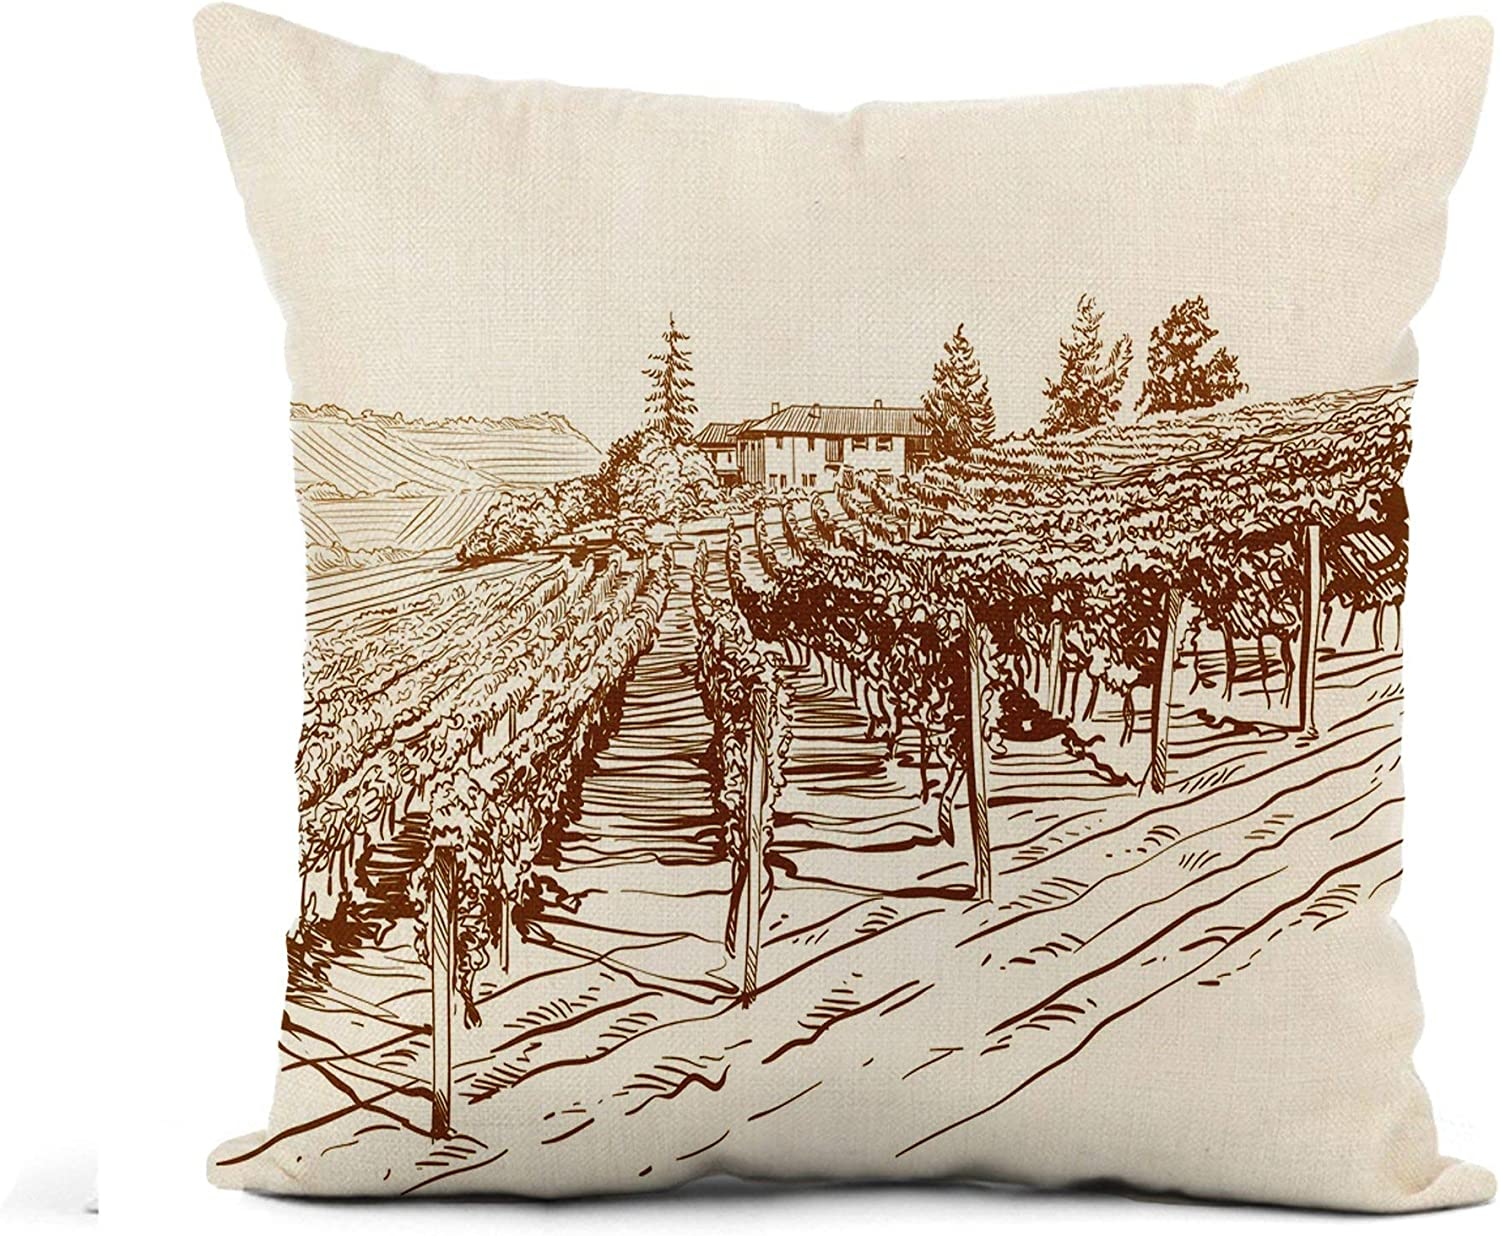 Awowee Flax Throw Pillow Cover Wine Vineyard Landscape Sketch Food France Farm Vintage Italian 20x20 Inches Pillowcase Home Decor Square Cotton Linen Pillow Case Cushion Cover